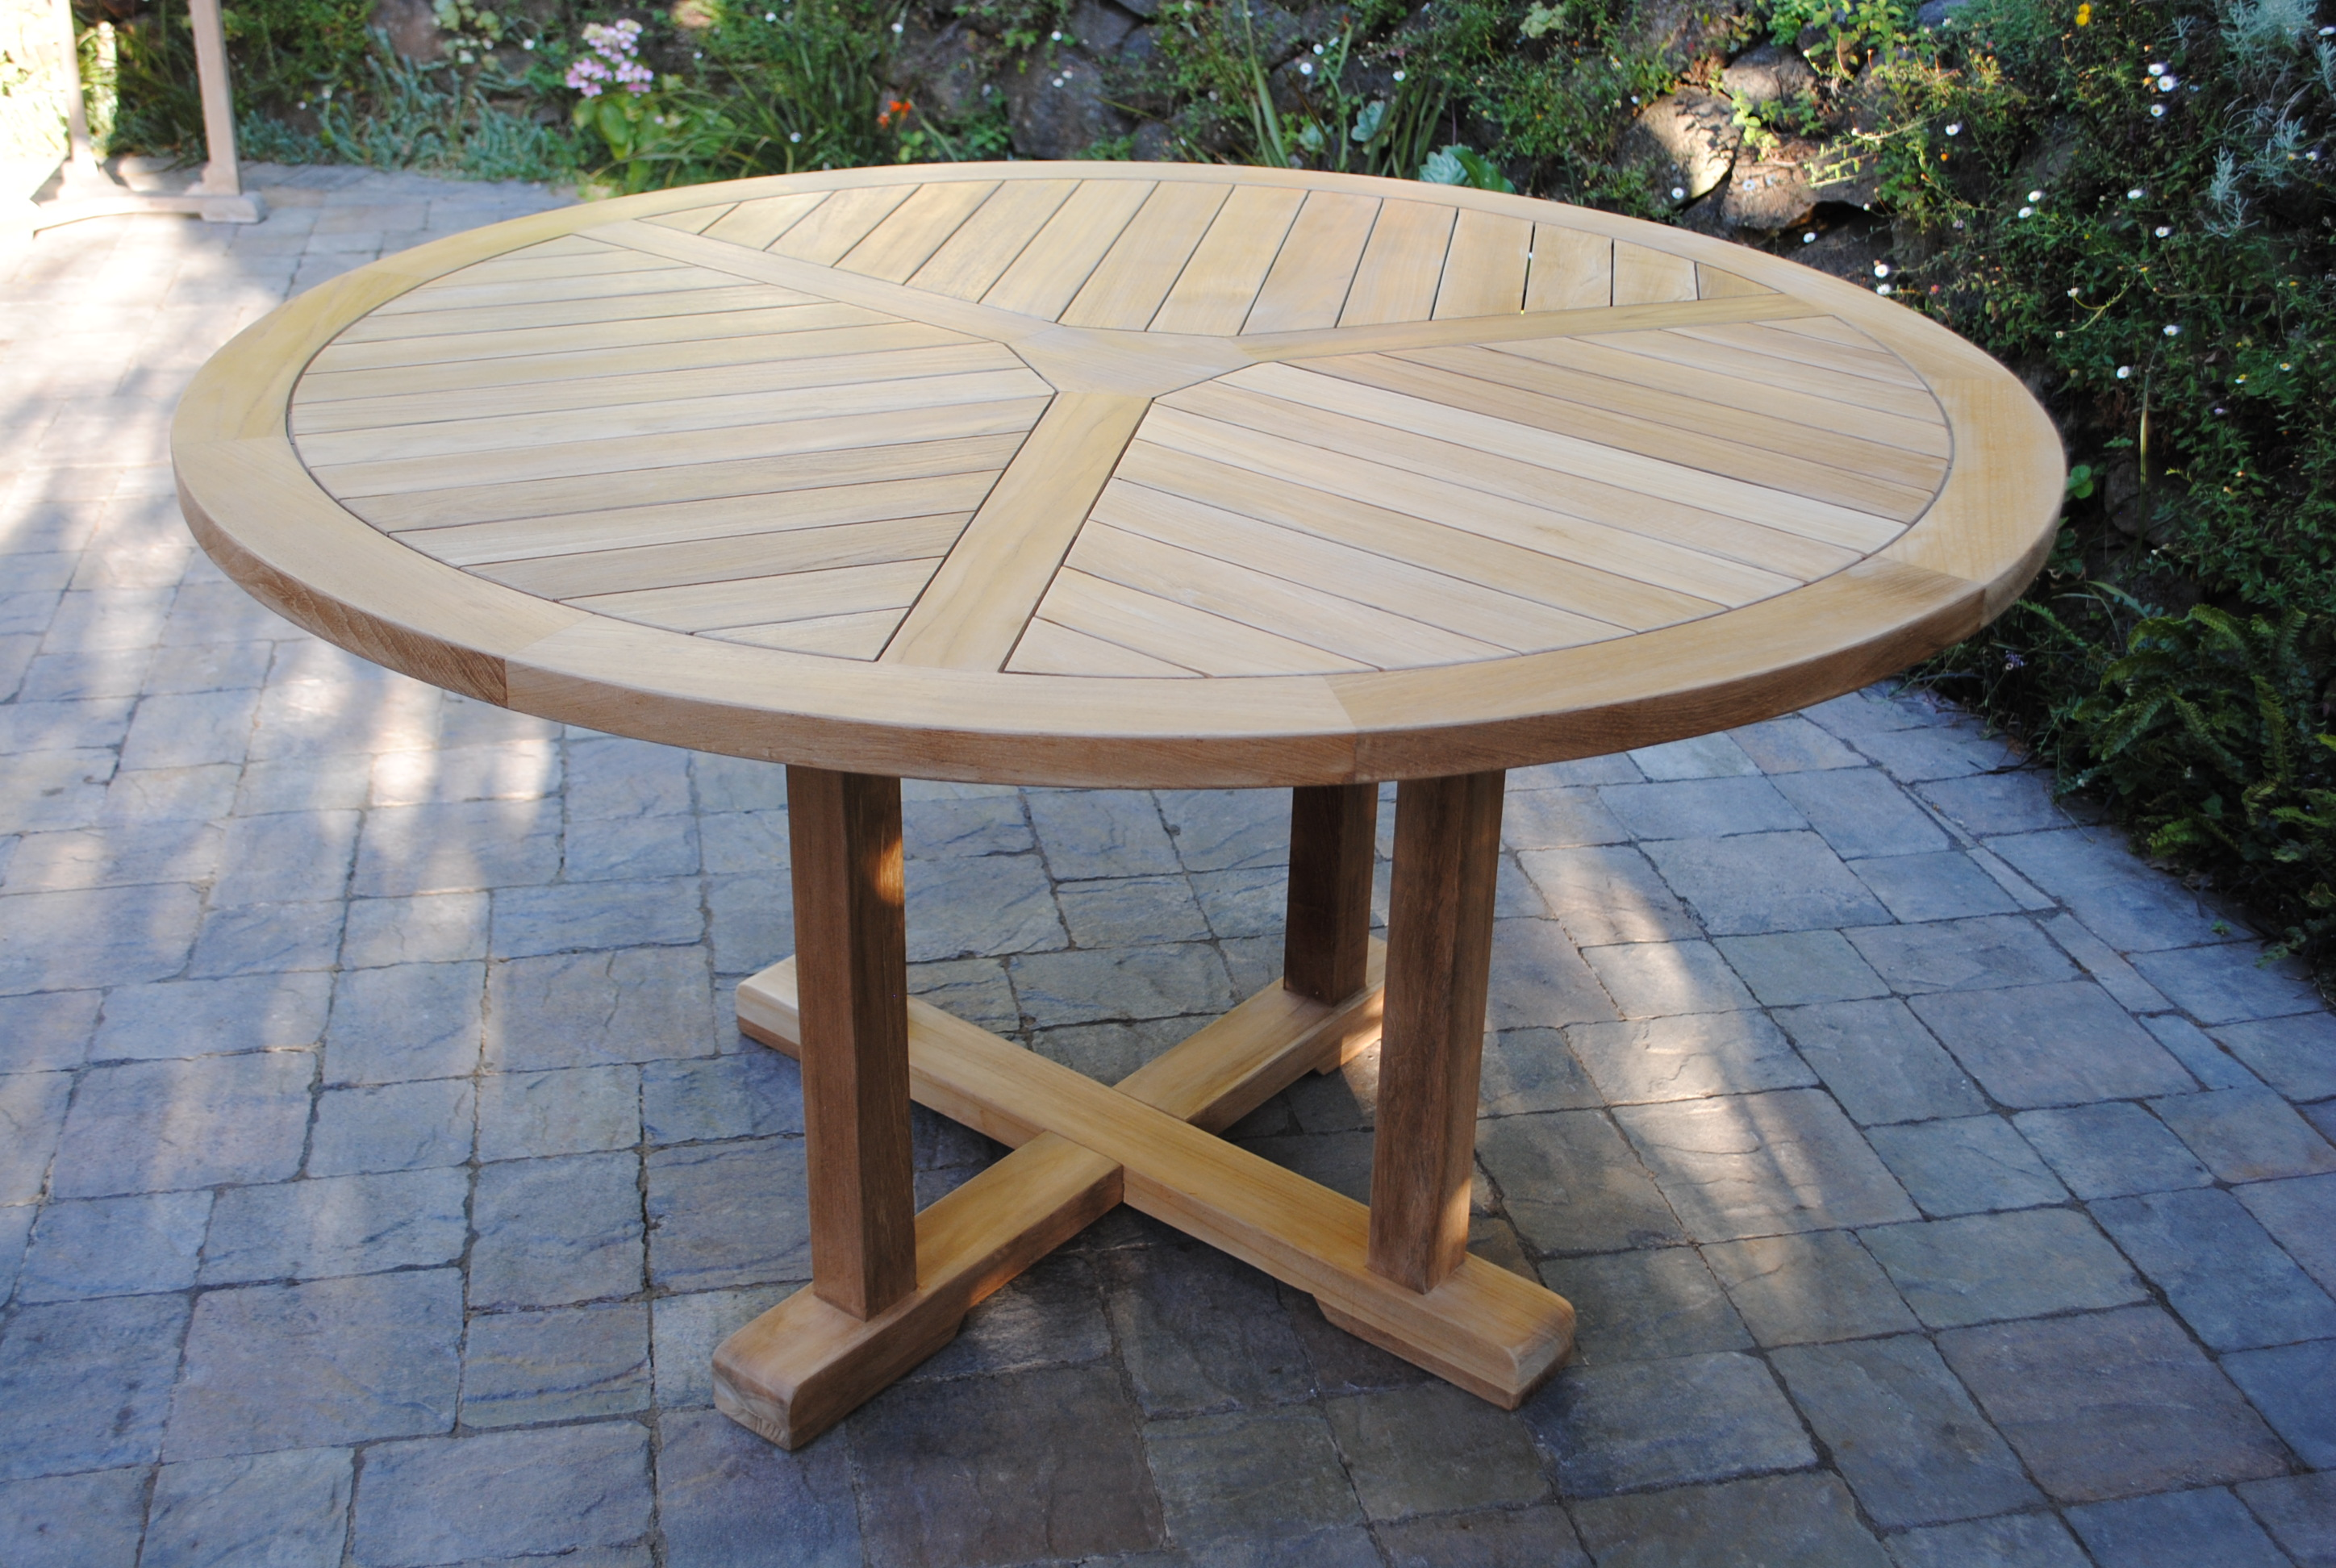 55″ Round Fixed Table